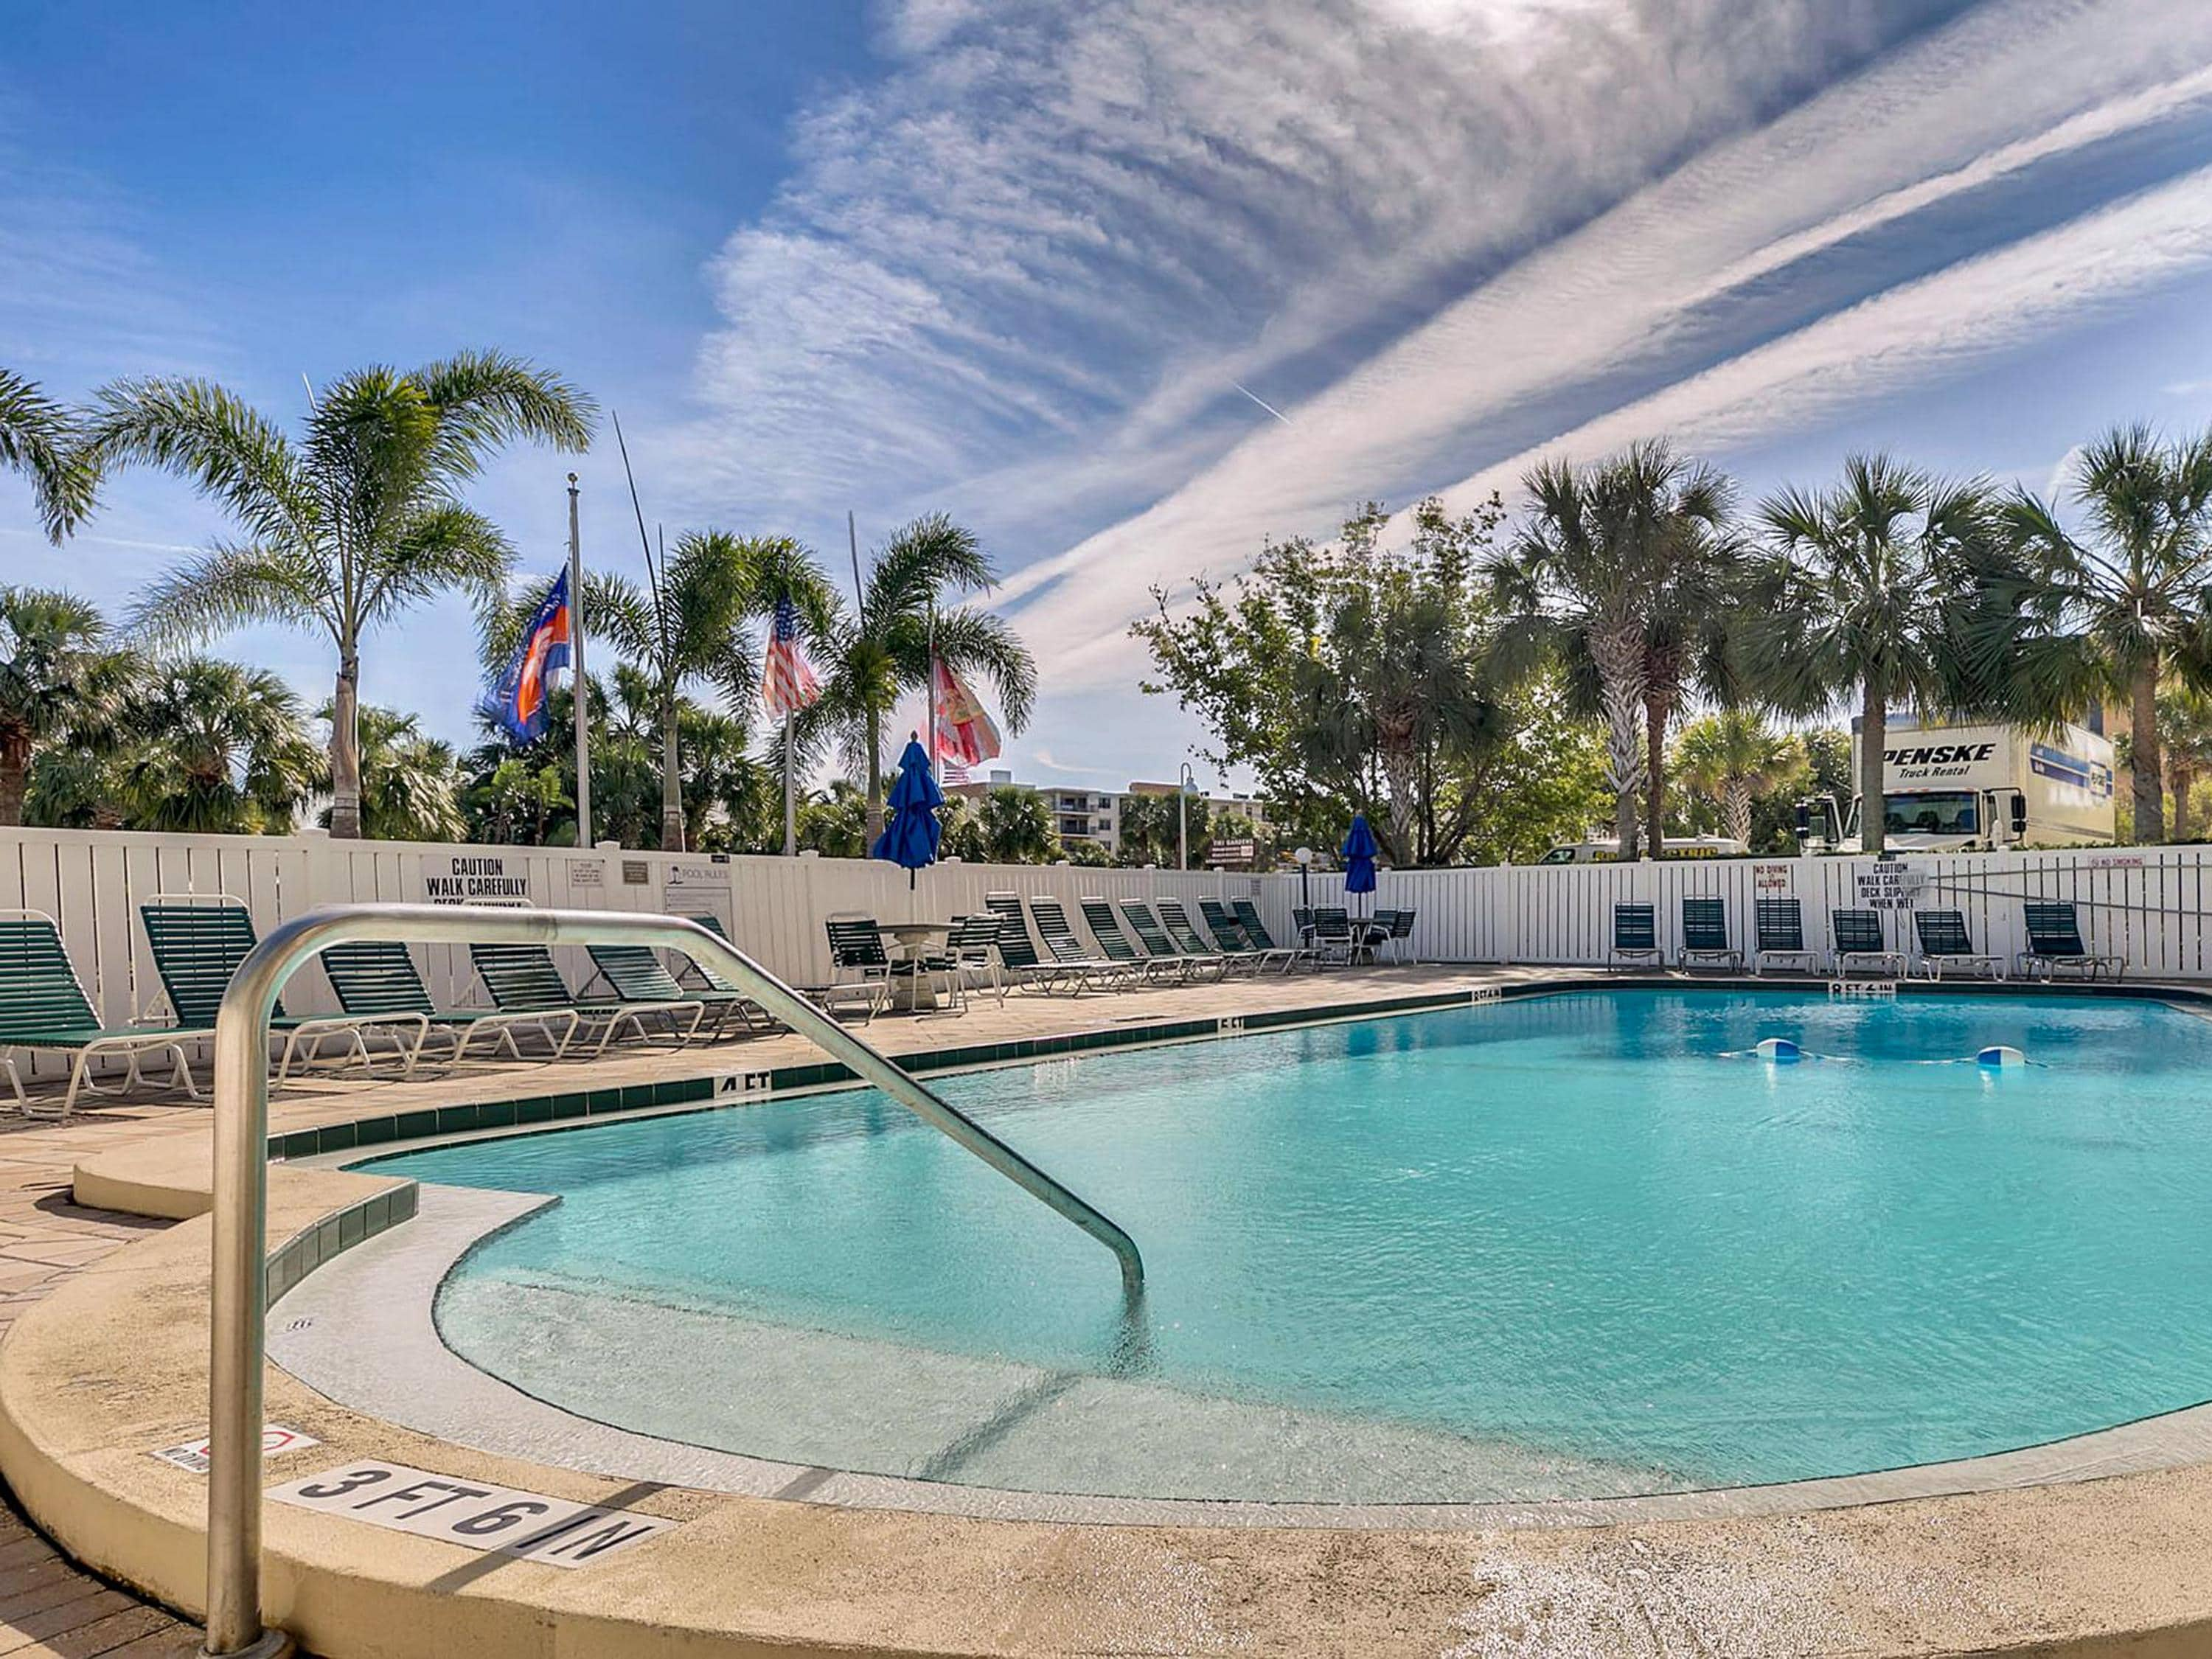 As part of the Holiday Villas II community, you'll enjoy refreshing swims in a sparkling pool.